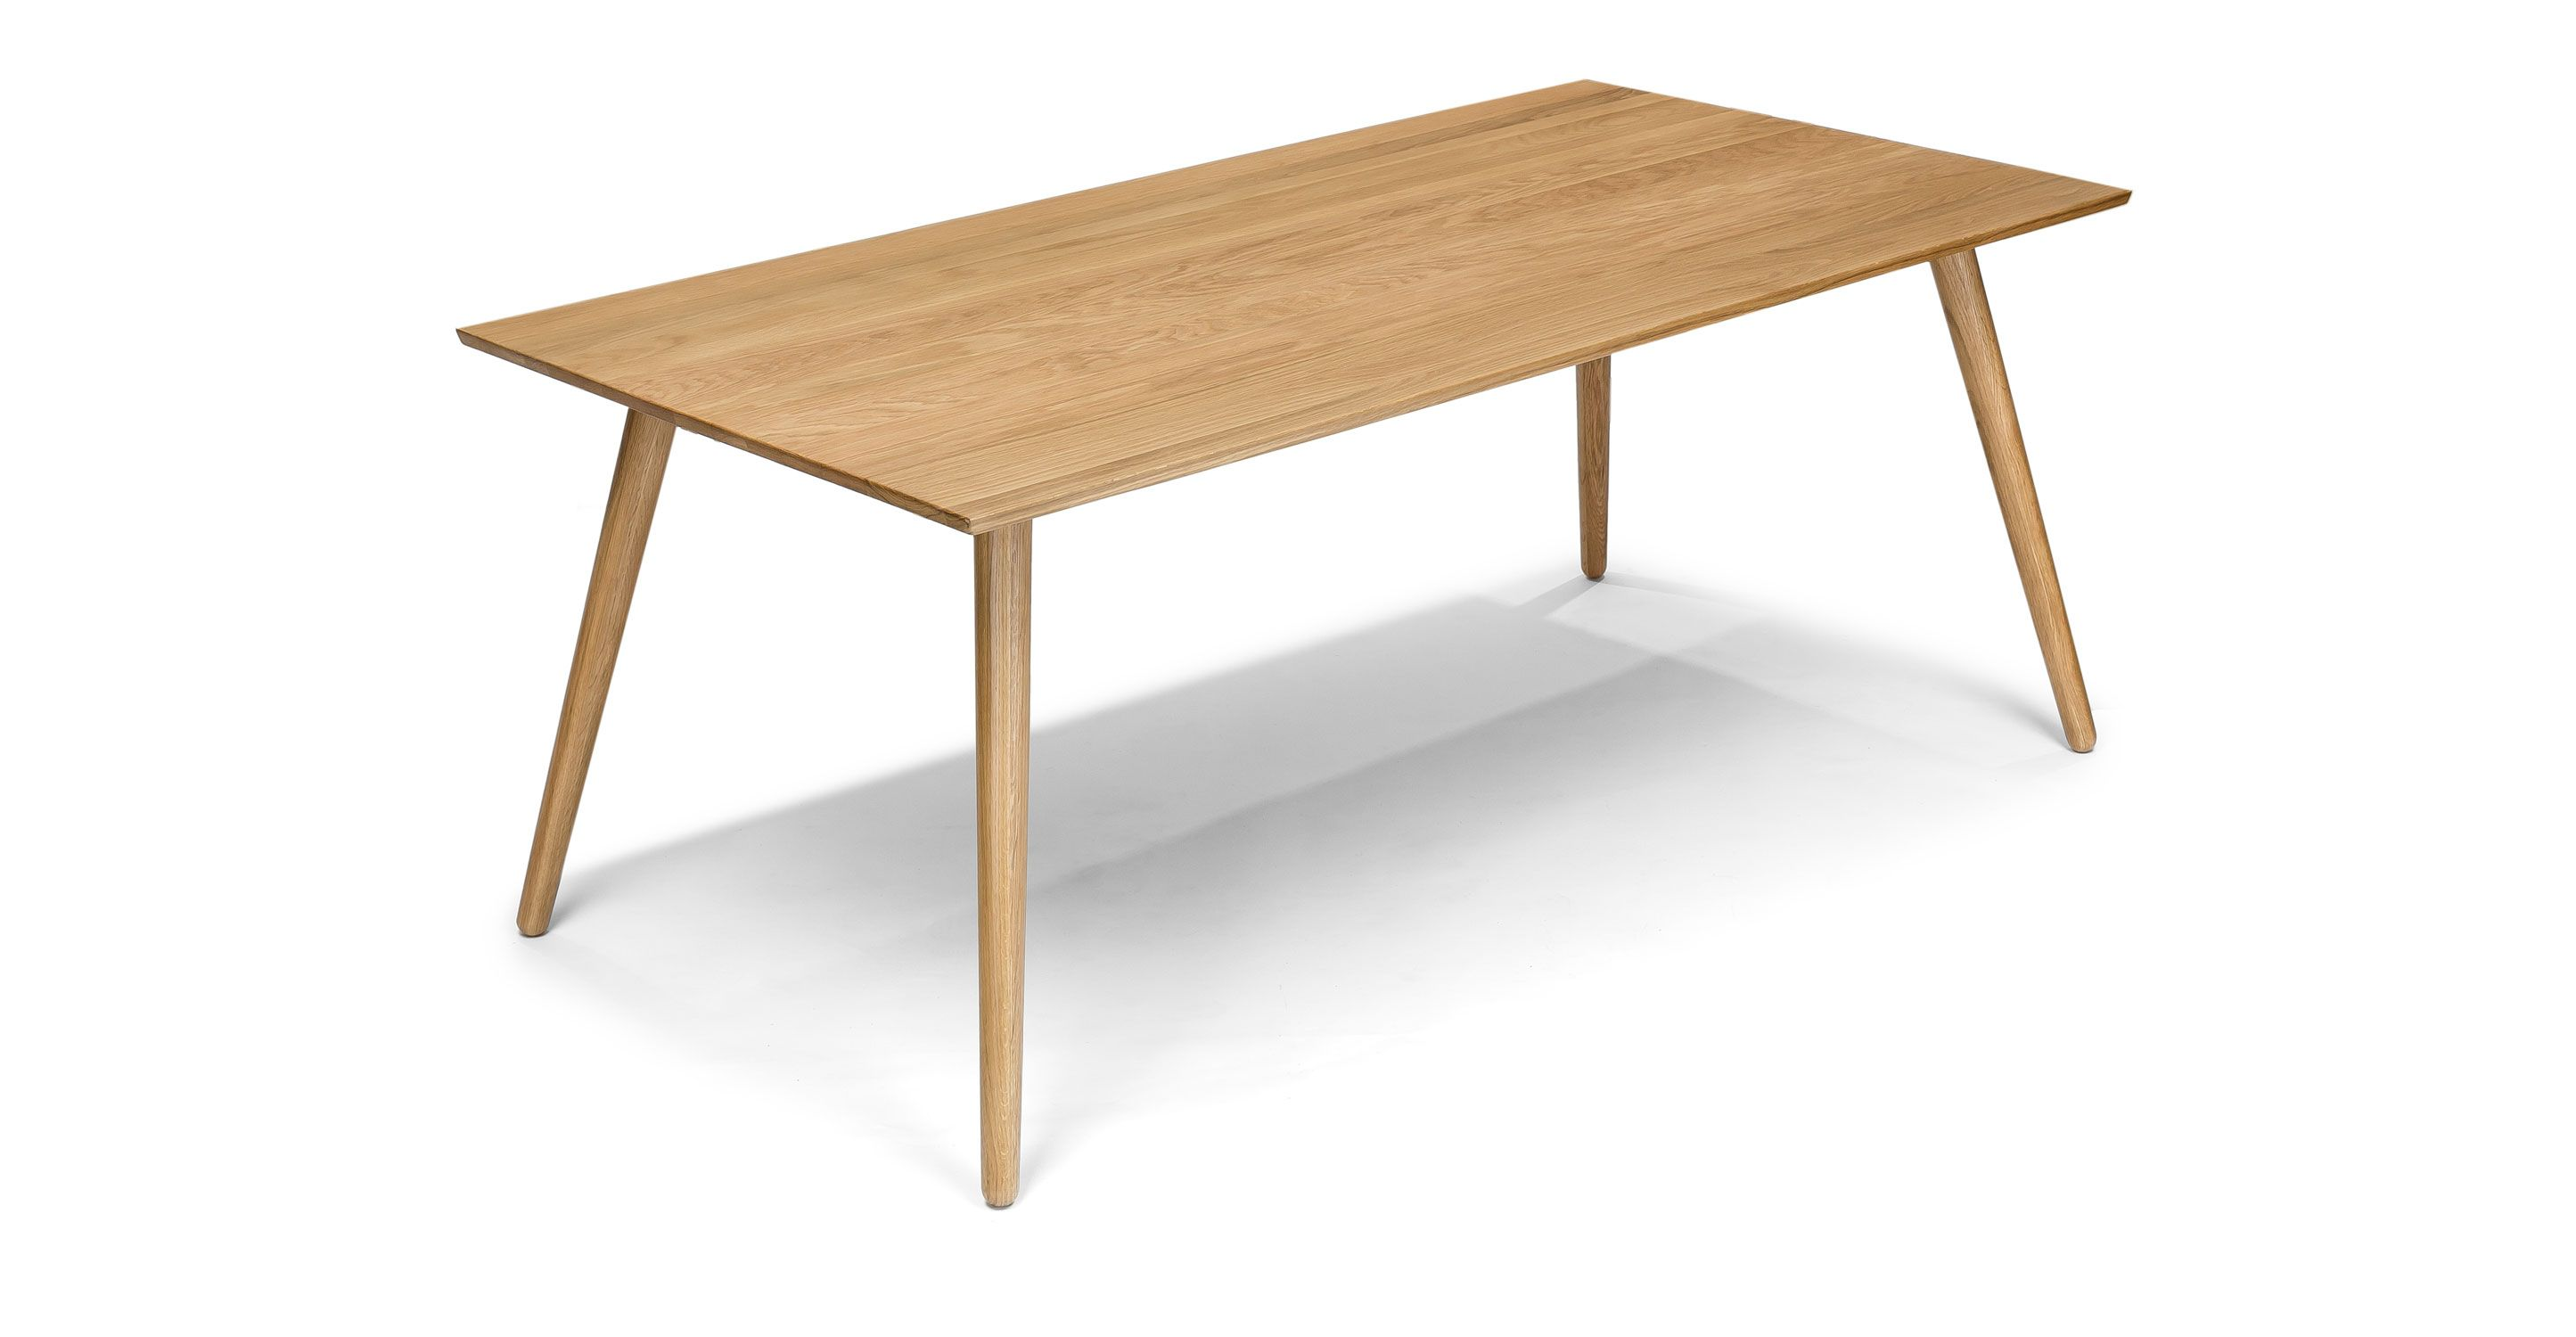 Attractive Rectangular Dining Table In Solid Wood | Article Seno Modern Furniture